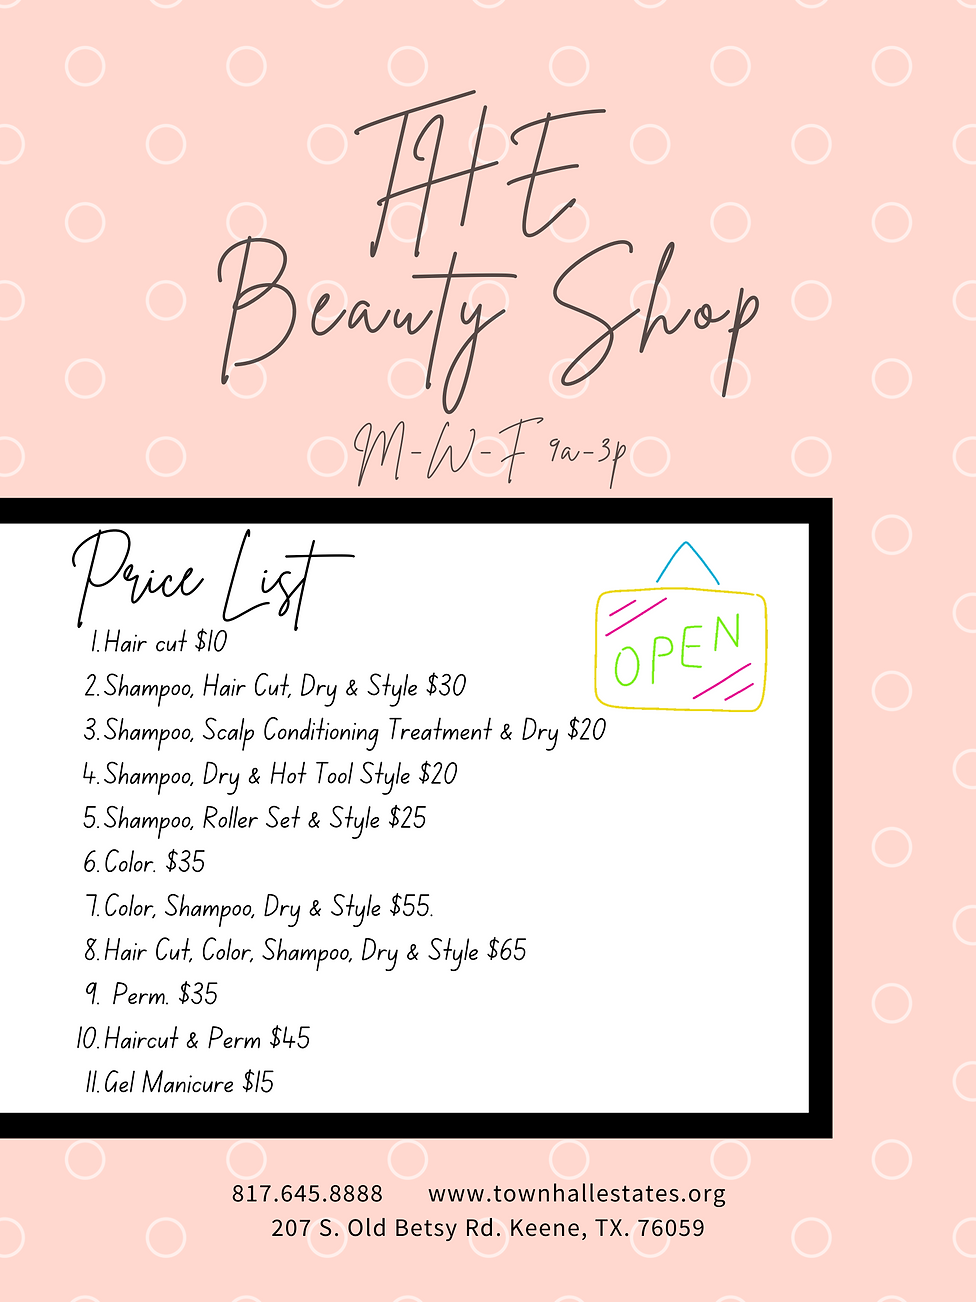 Town Hall Estates Keene Beauty Shop Price List